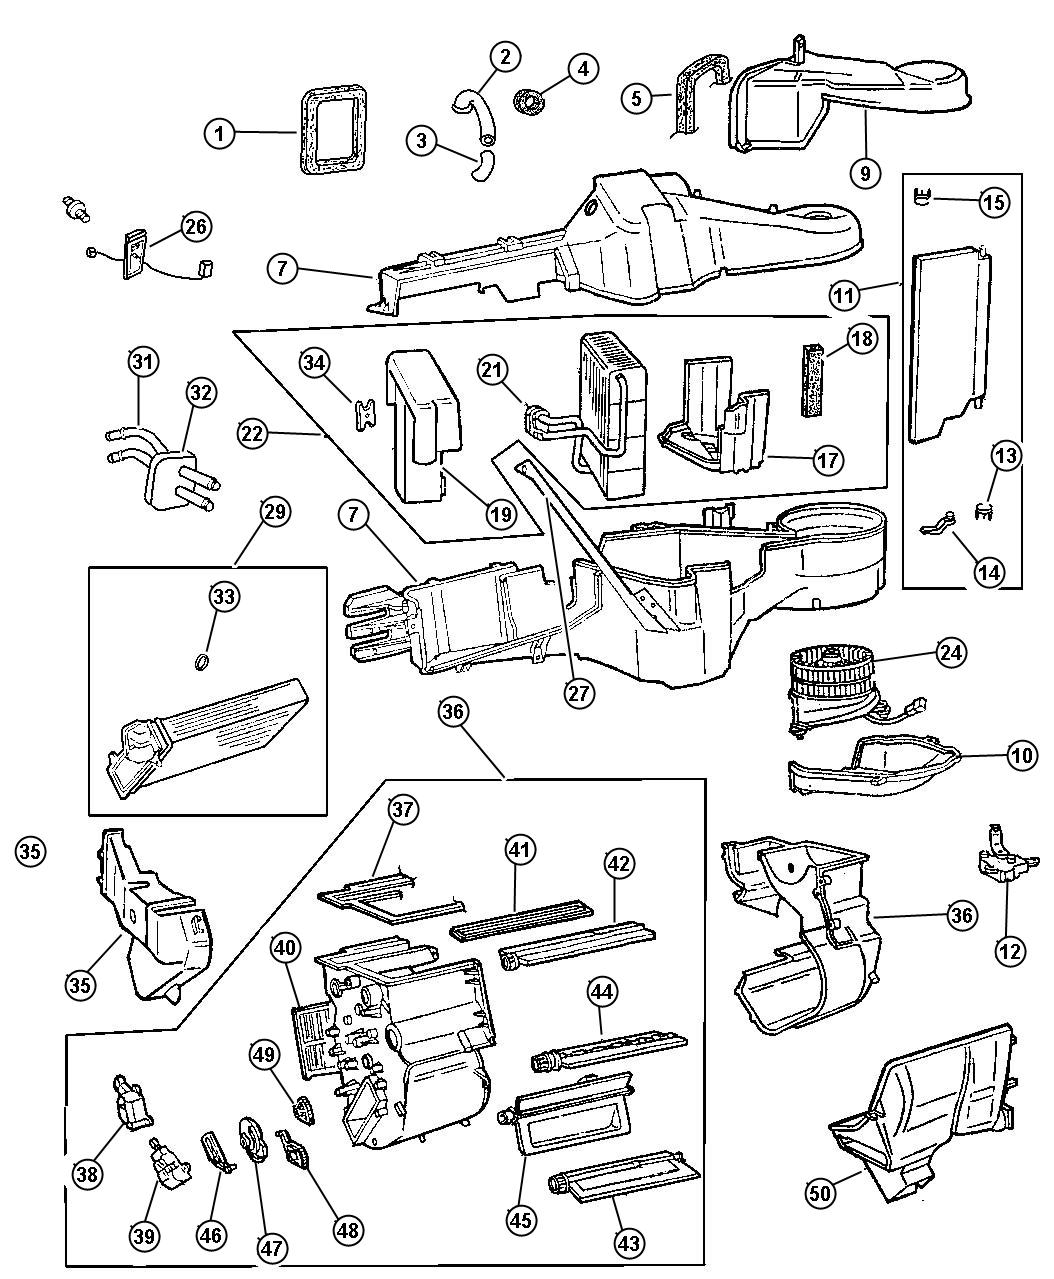 2006 kia spectra air conditioning diagram html